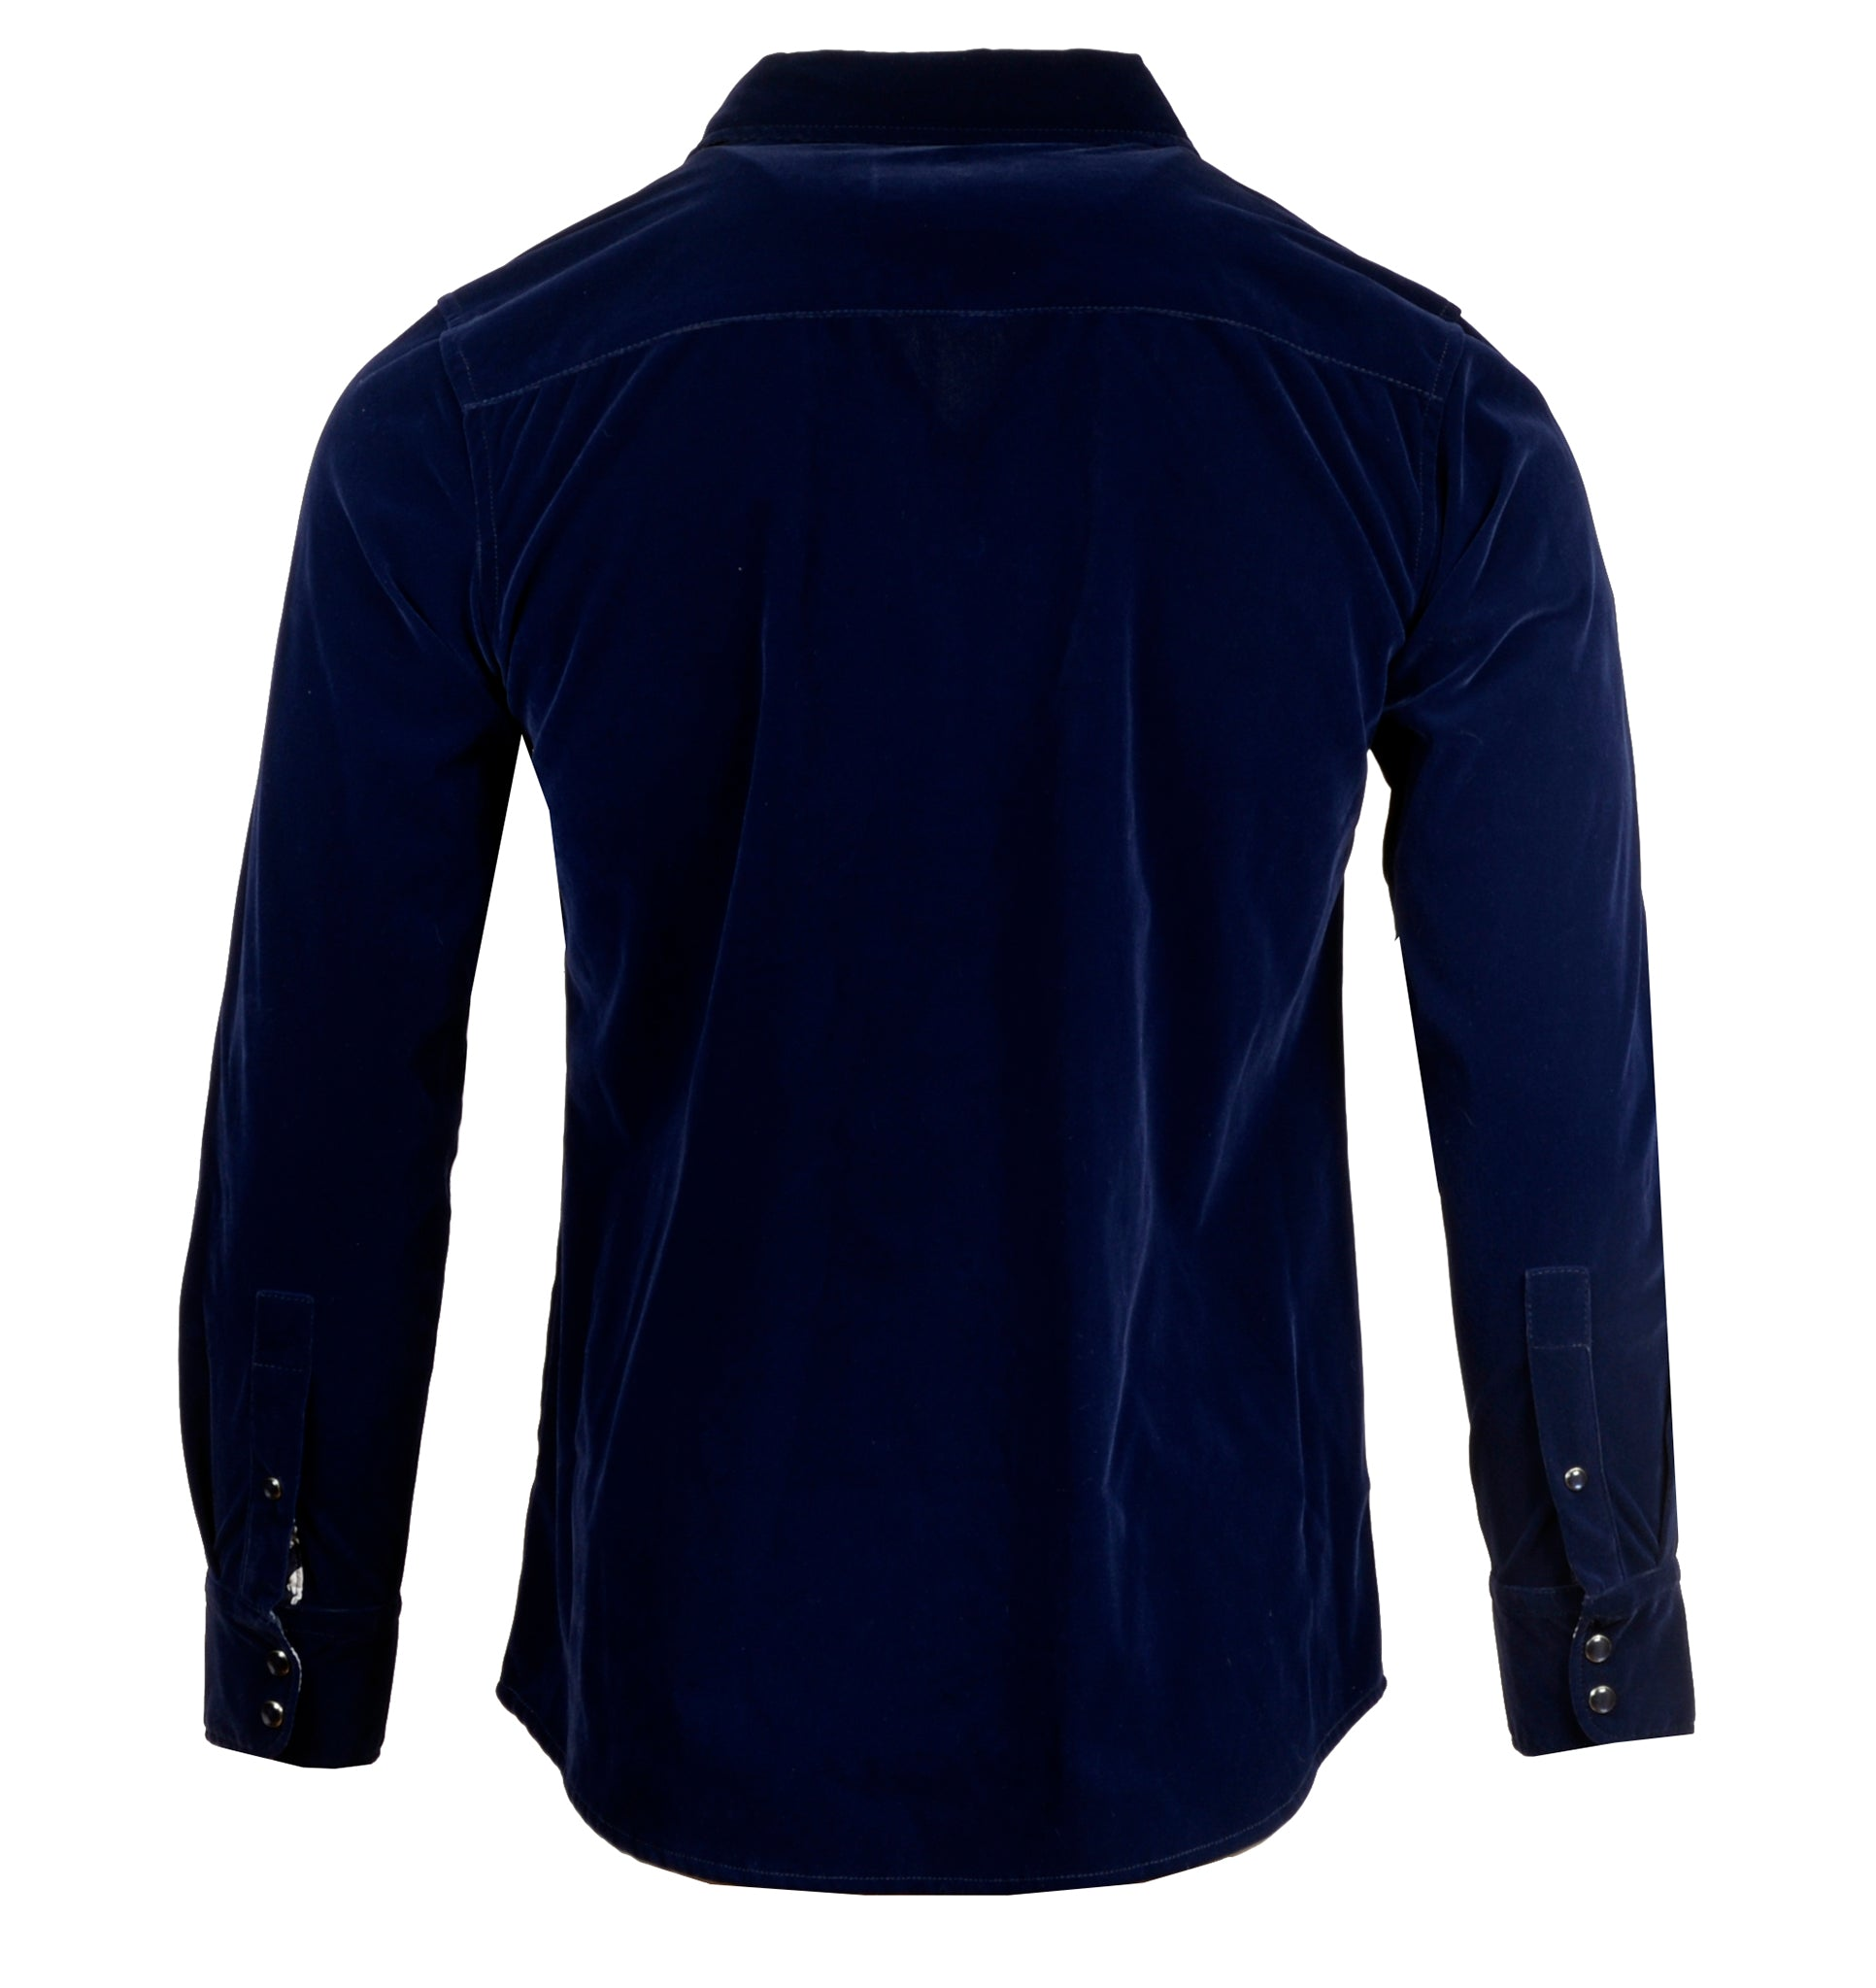 Men's Faux Suede Long Sleeve Snap Button Fashion Shirt - 'Blue Suede Shoes' by Rock Roll n Soul2